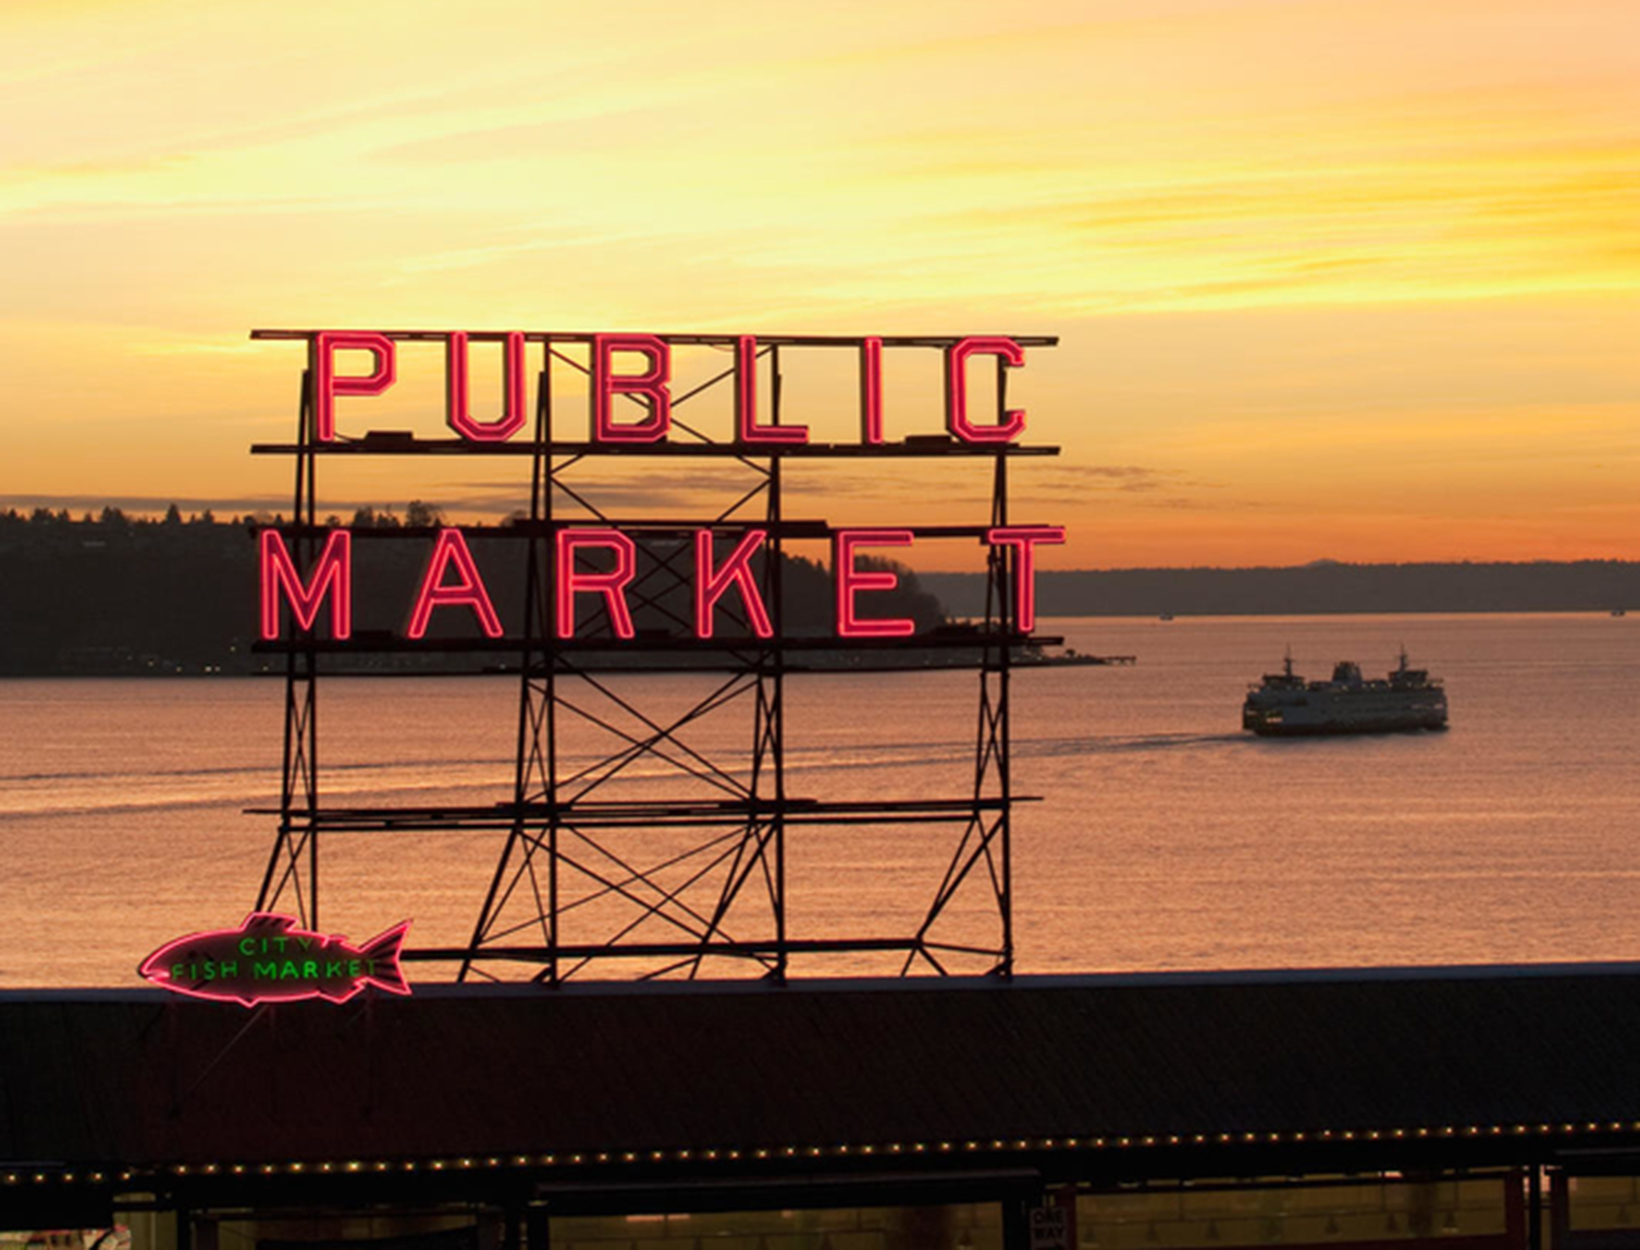 The Public Market sign at the Pike Place Market in the evening light